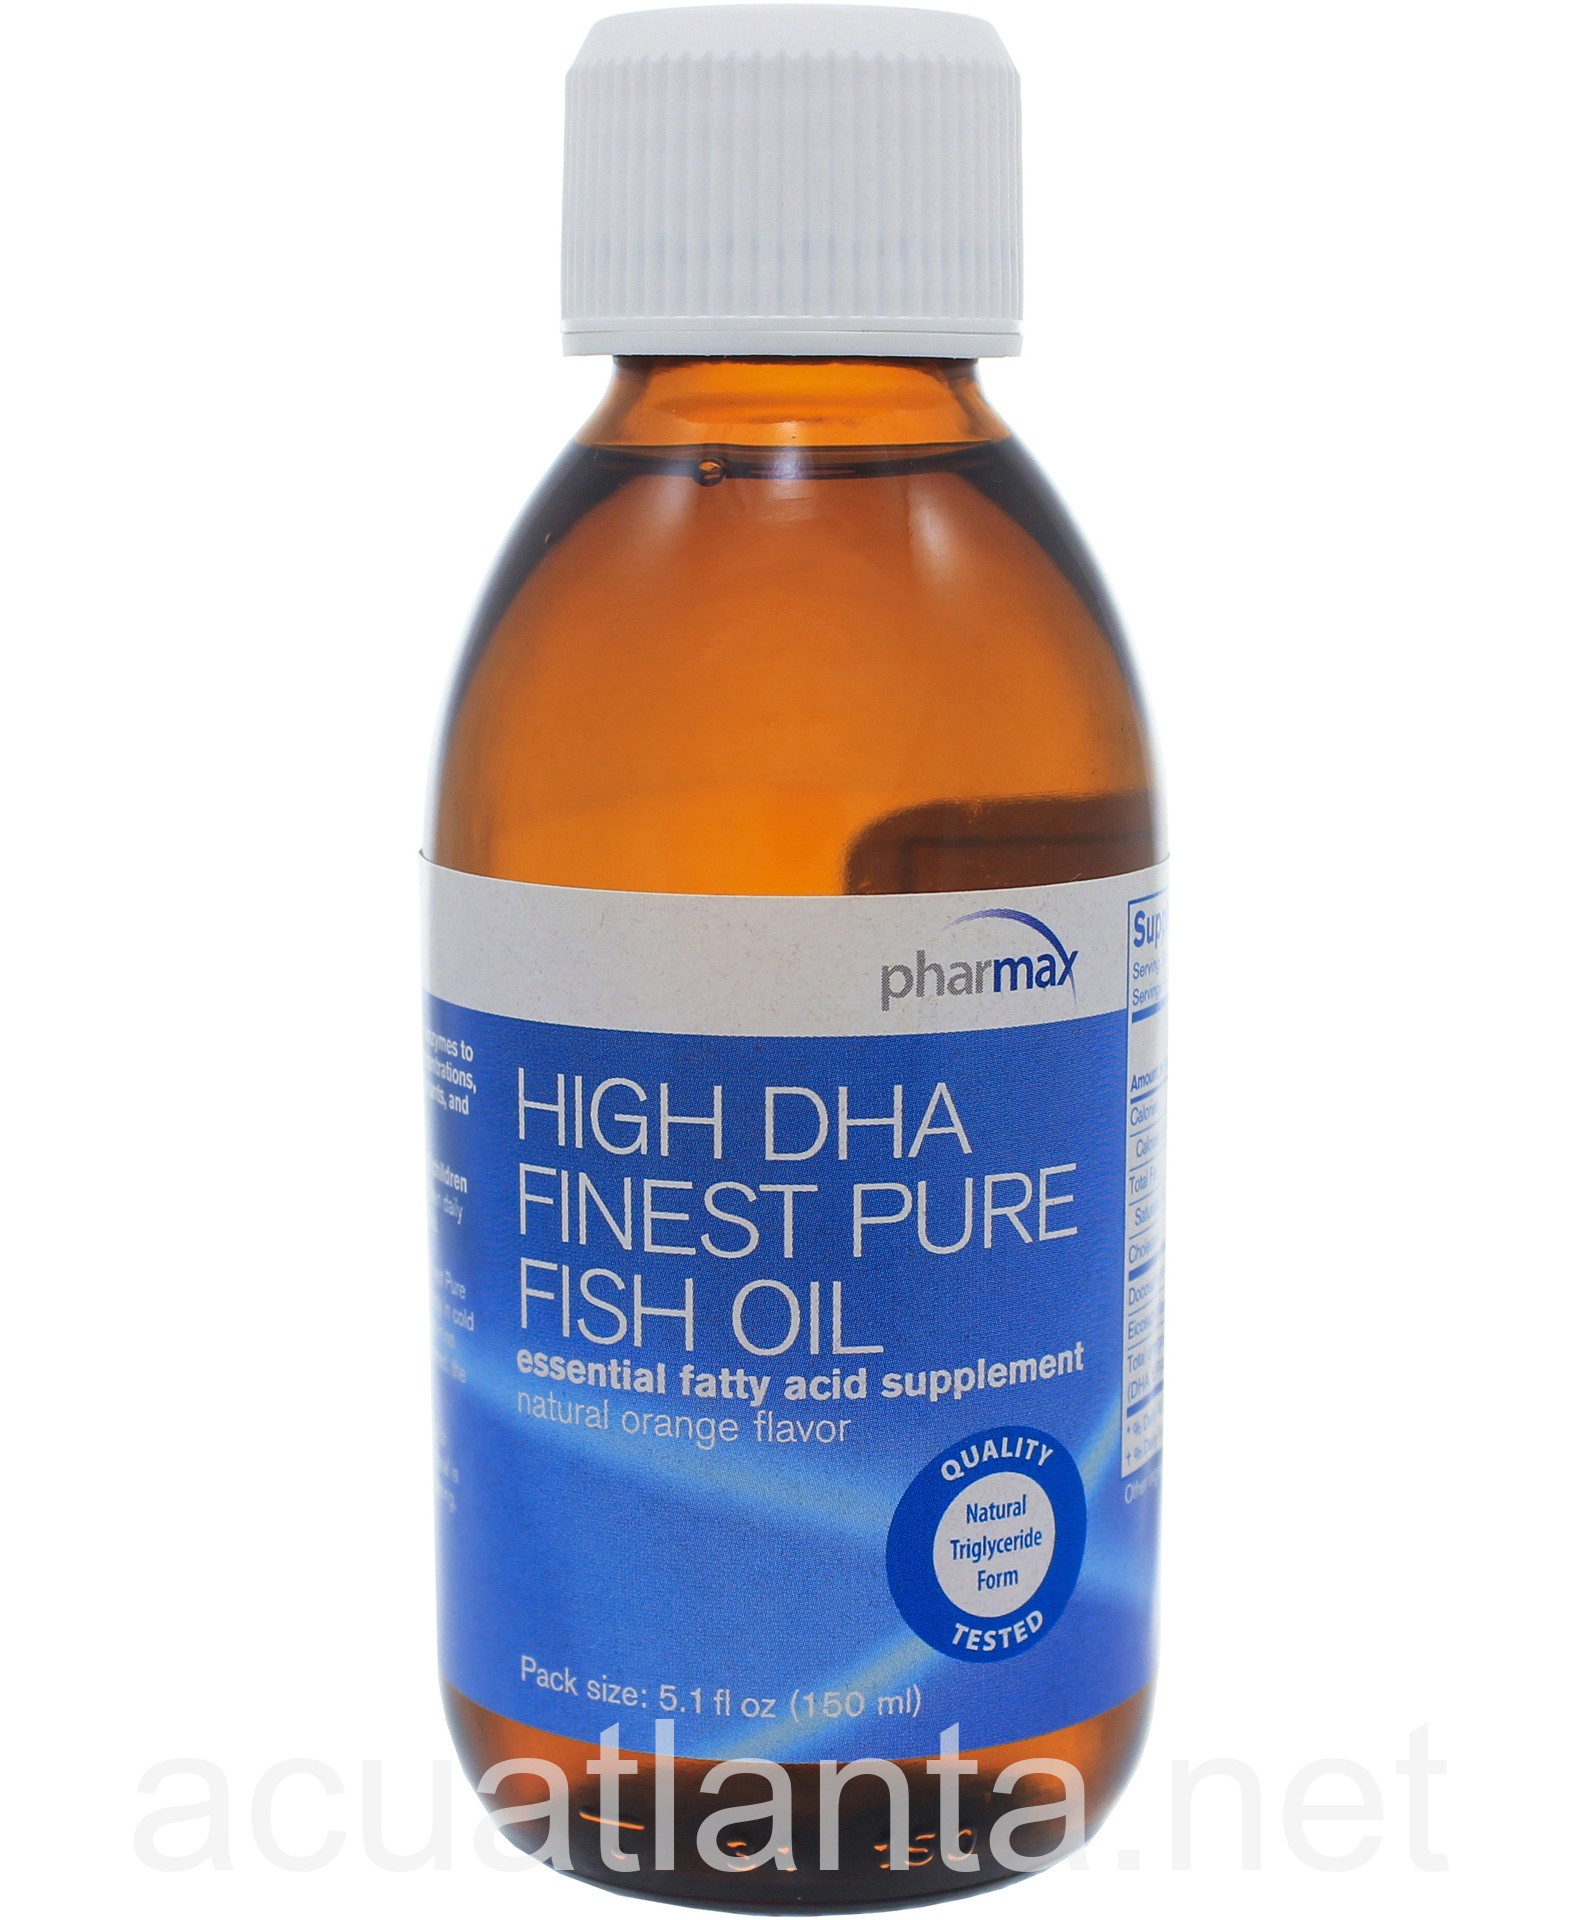 High dha finest pure fish oil by pharmax high dha finest for High dha fish oil